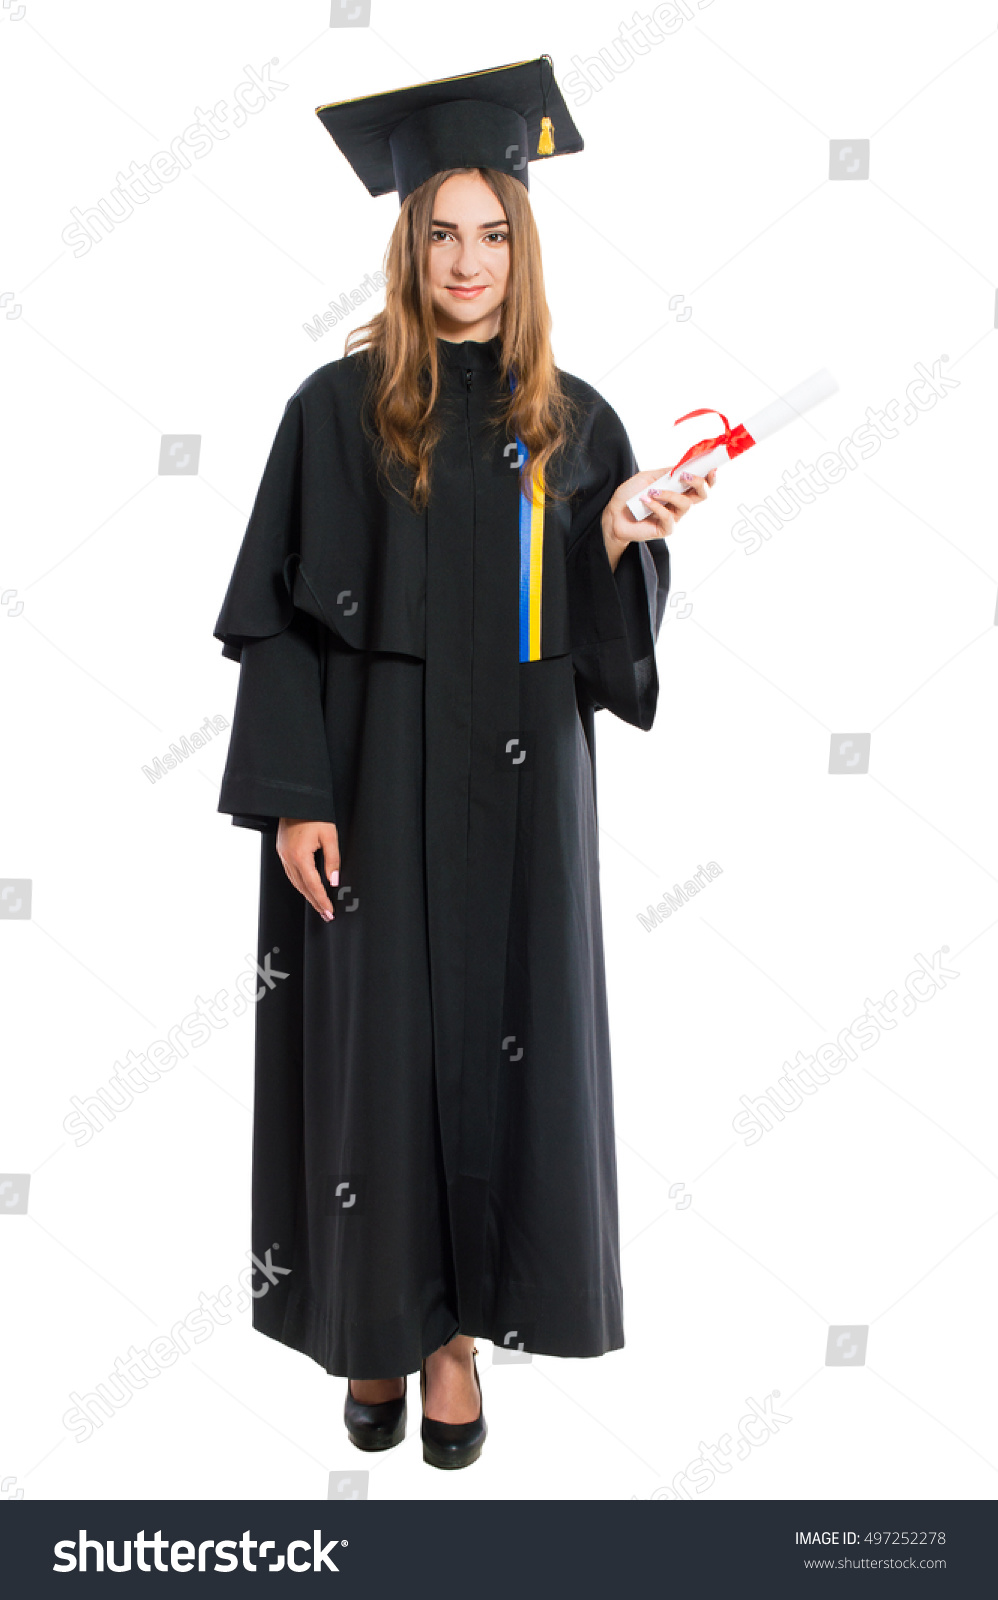 Young Lady Graduate Gown Holding Diploma Stock Photo (Edit Now ...